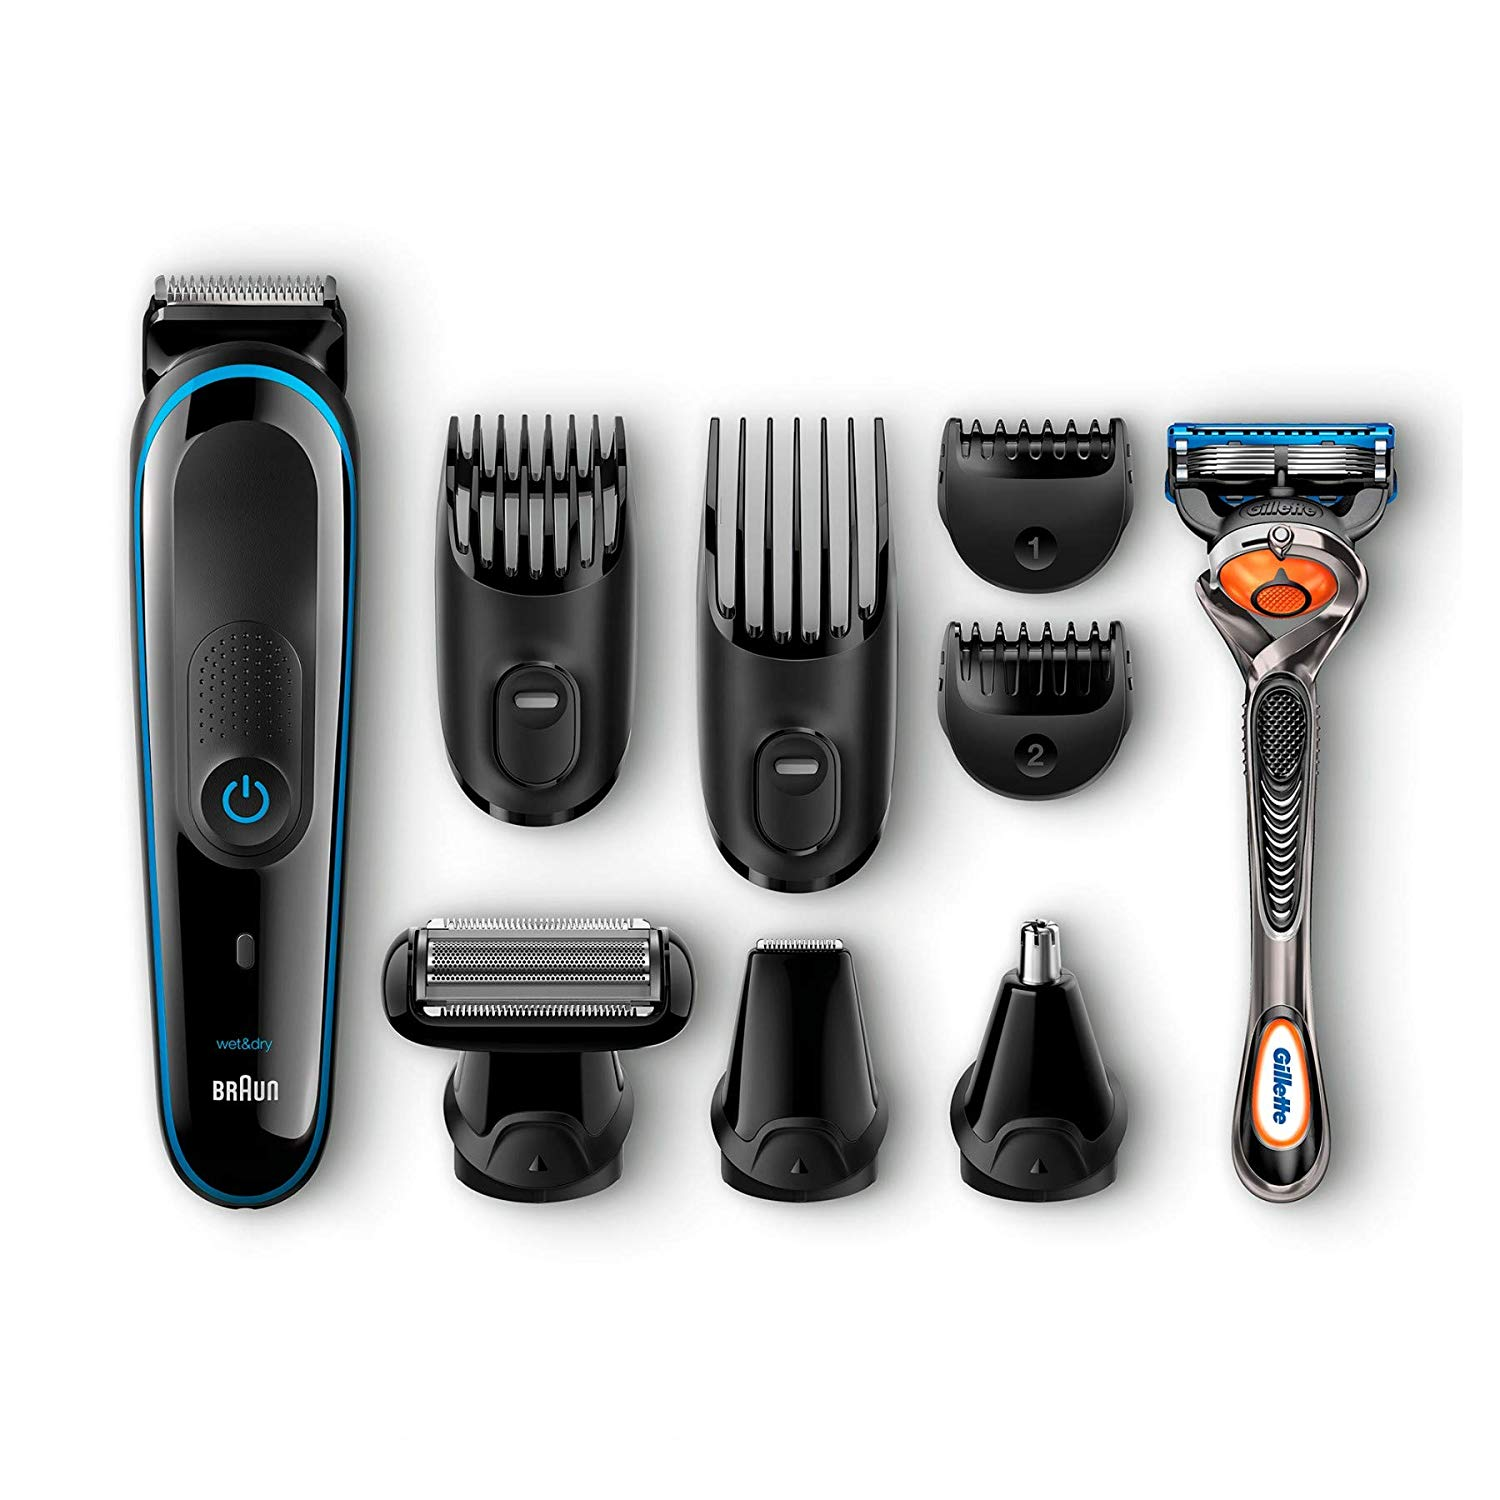 Braun Multigrooming Set amazon